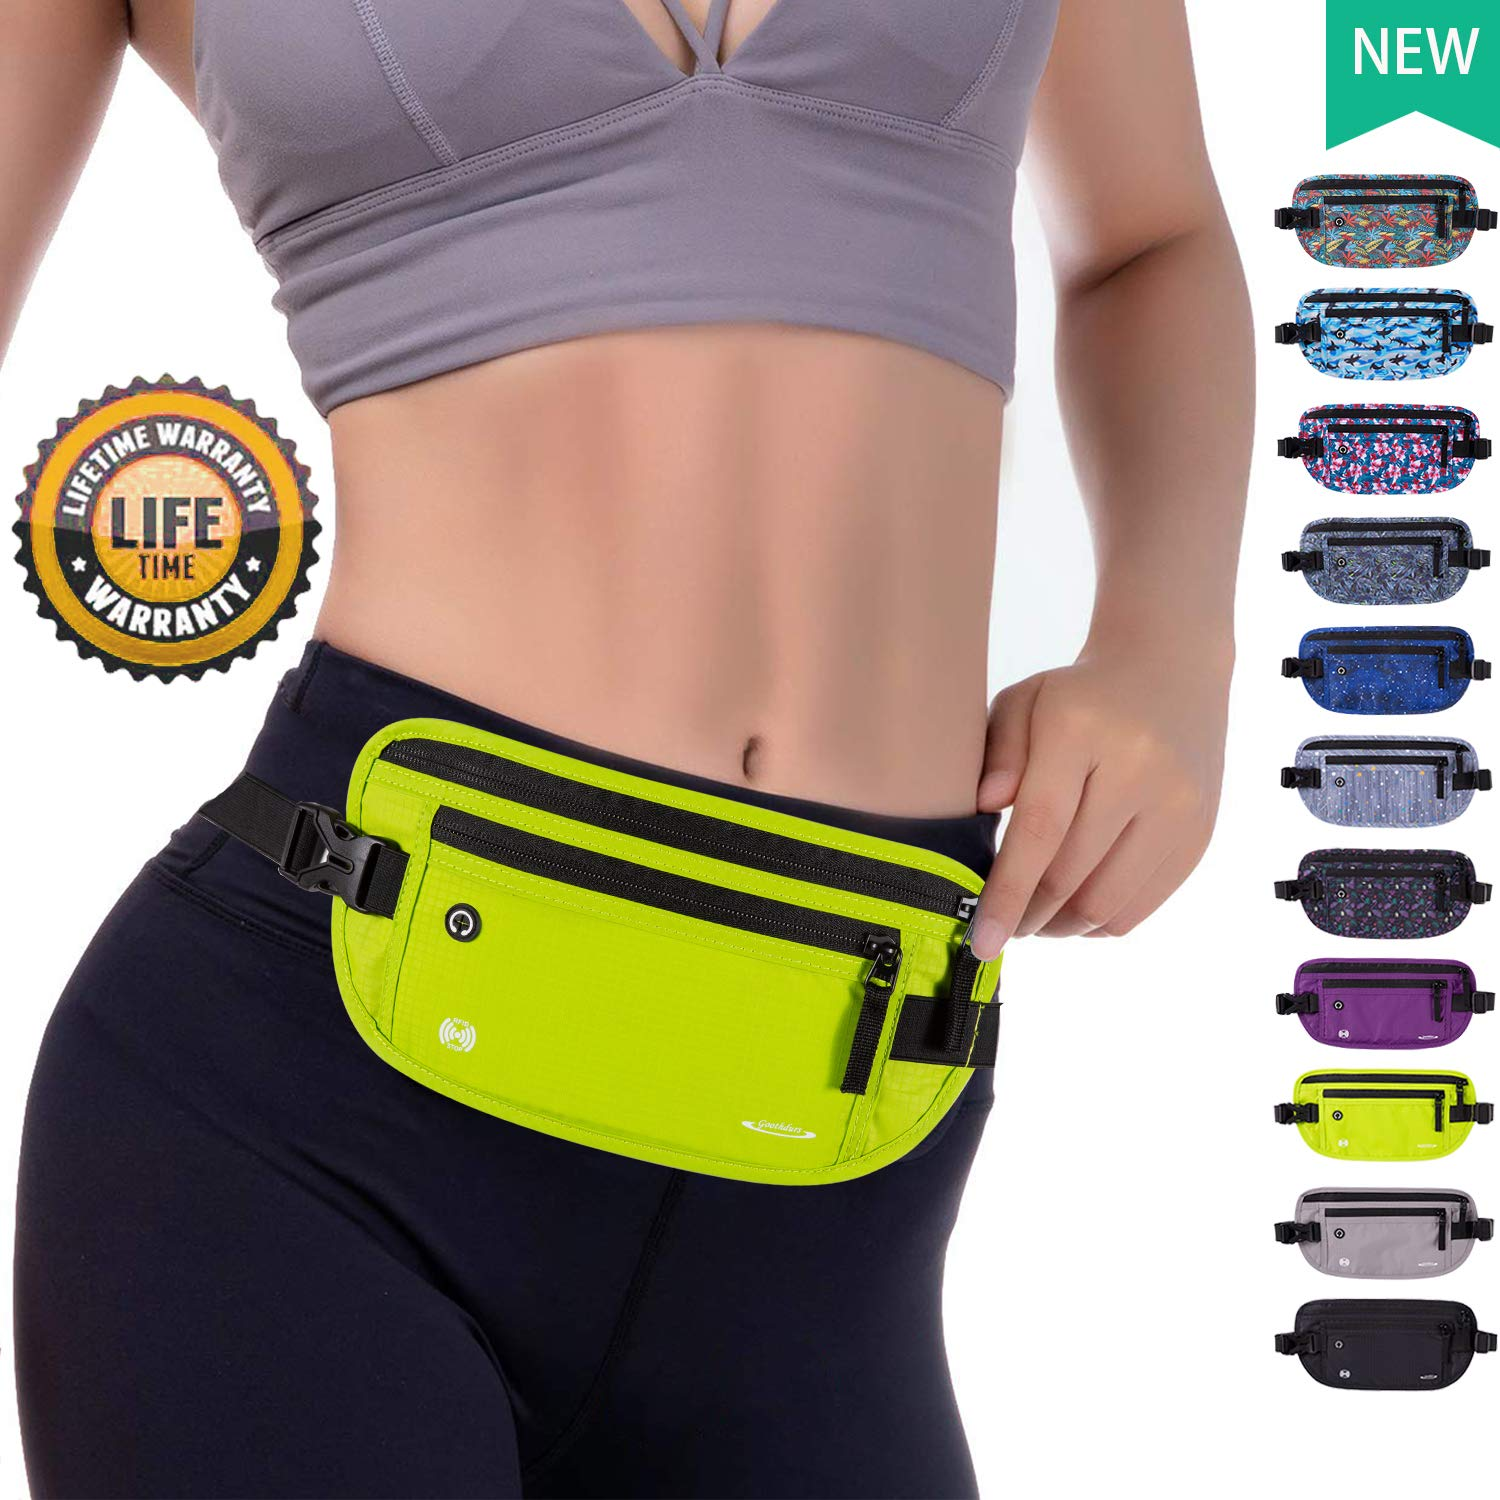 Goothdurs Running Money Belt Travel Fanny Pack RFID Blocking Slim Waist Bag for Women and Men 2019 New Model